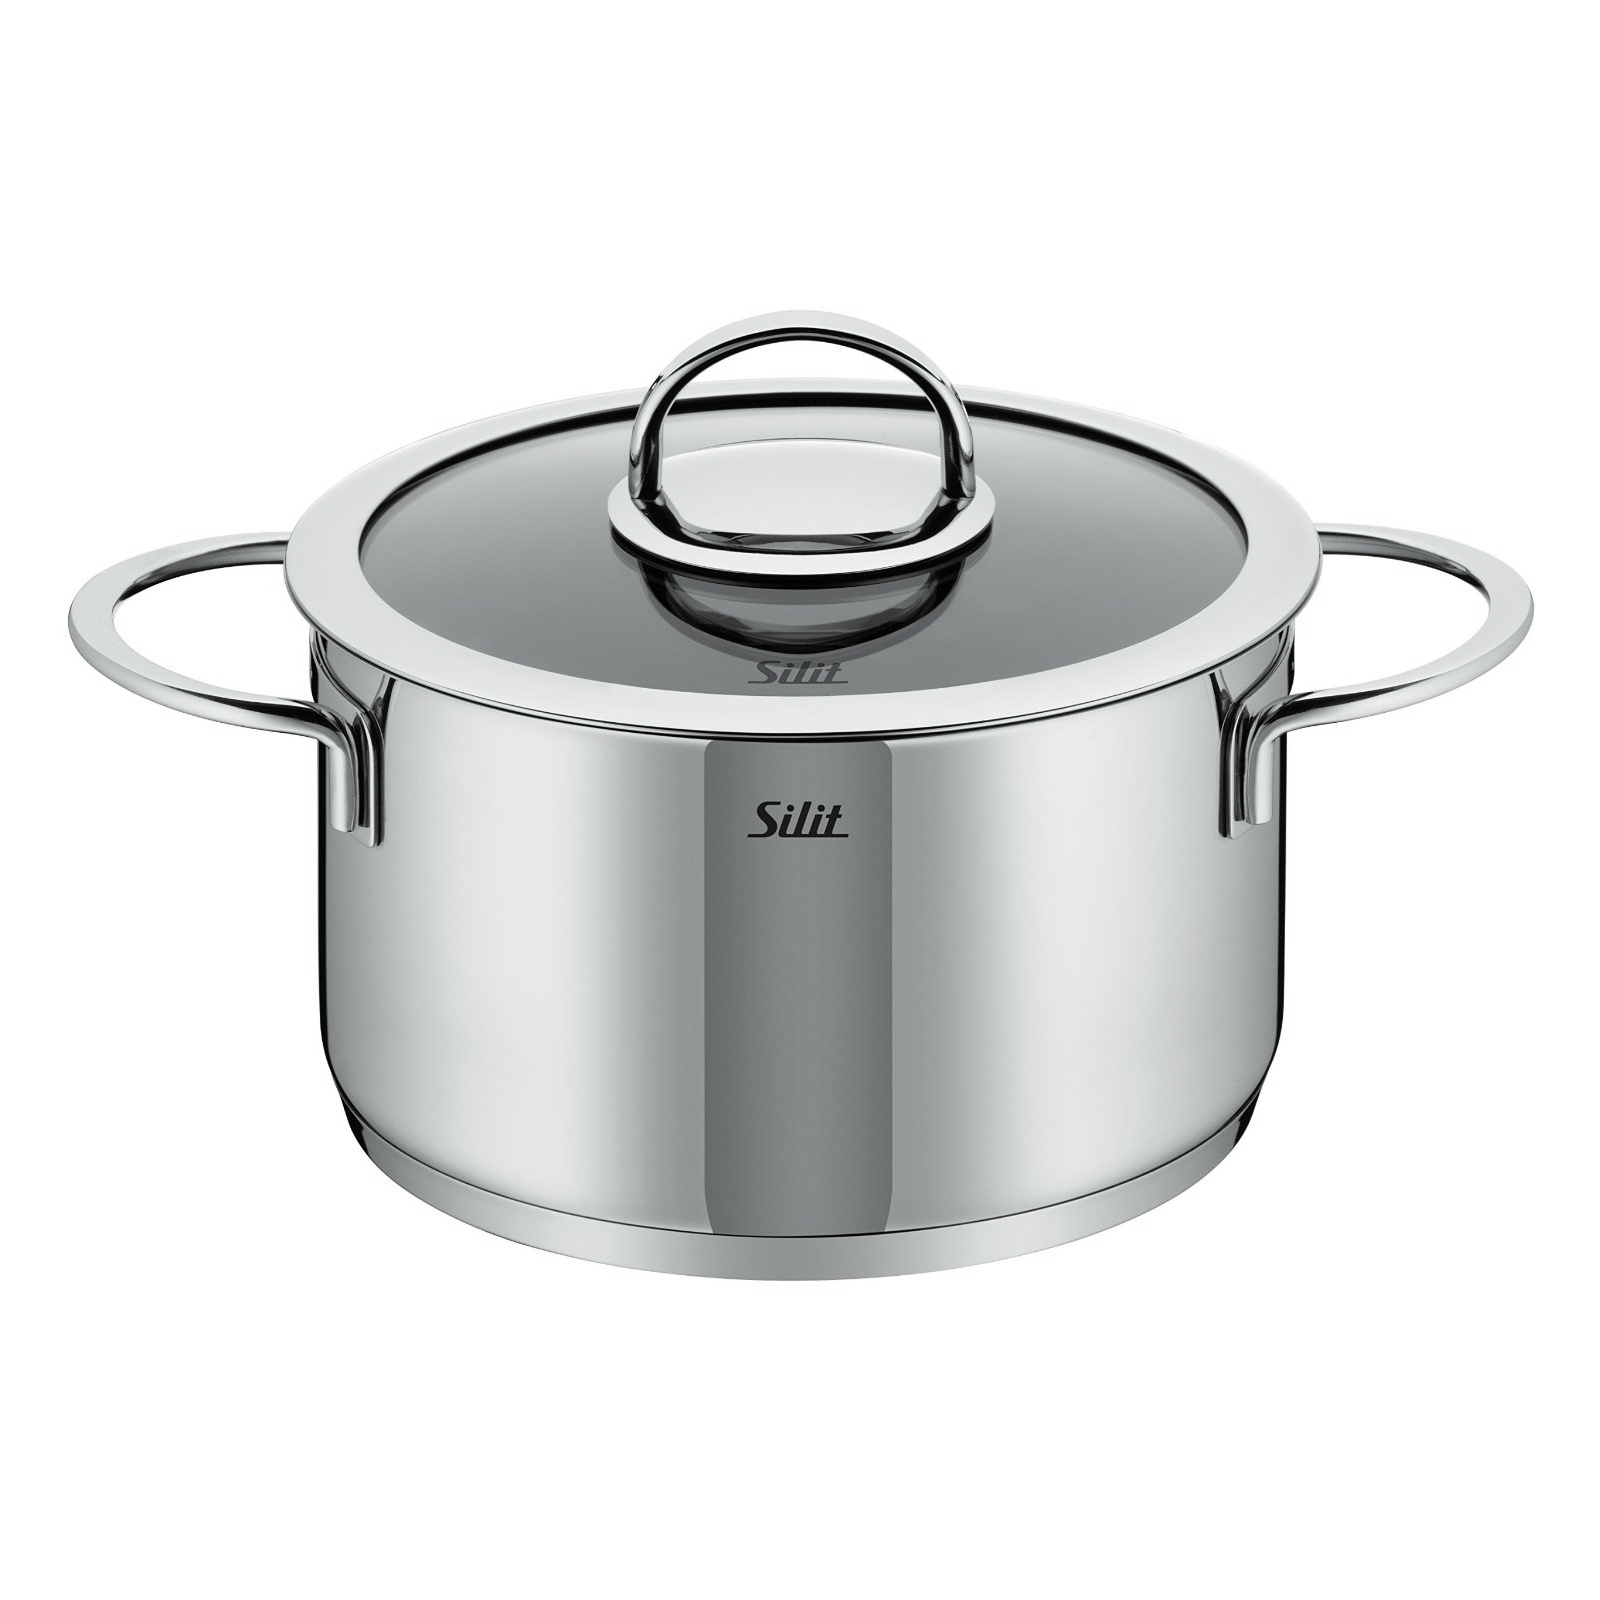 Silit Vignola Stainless Steel 6.6 Quart High Casserole with Lid